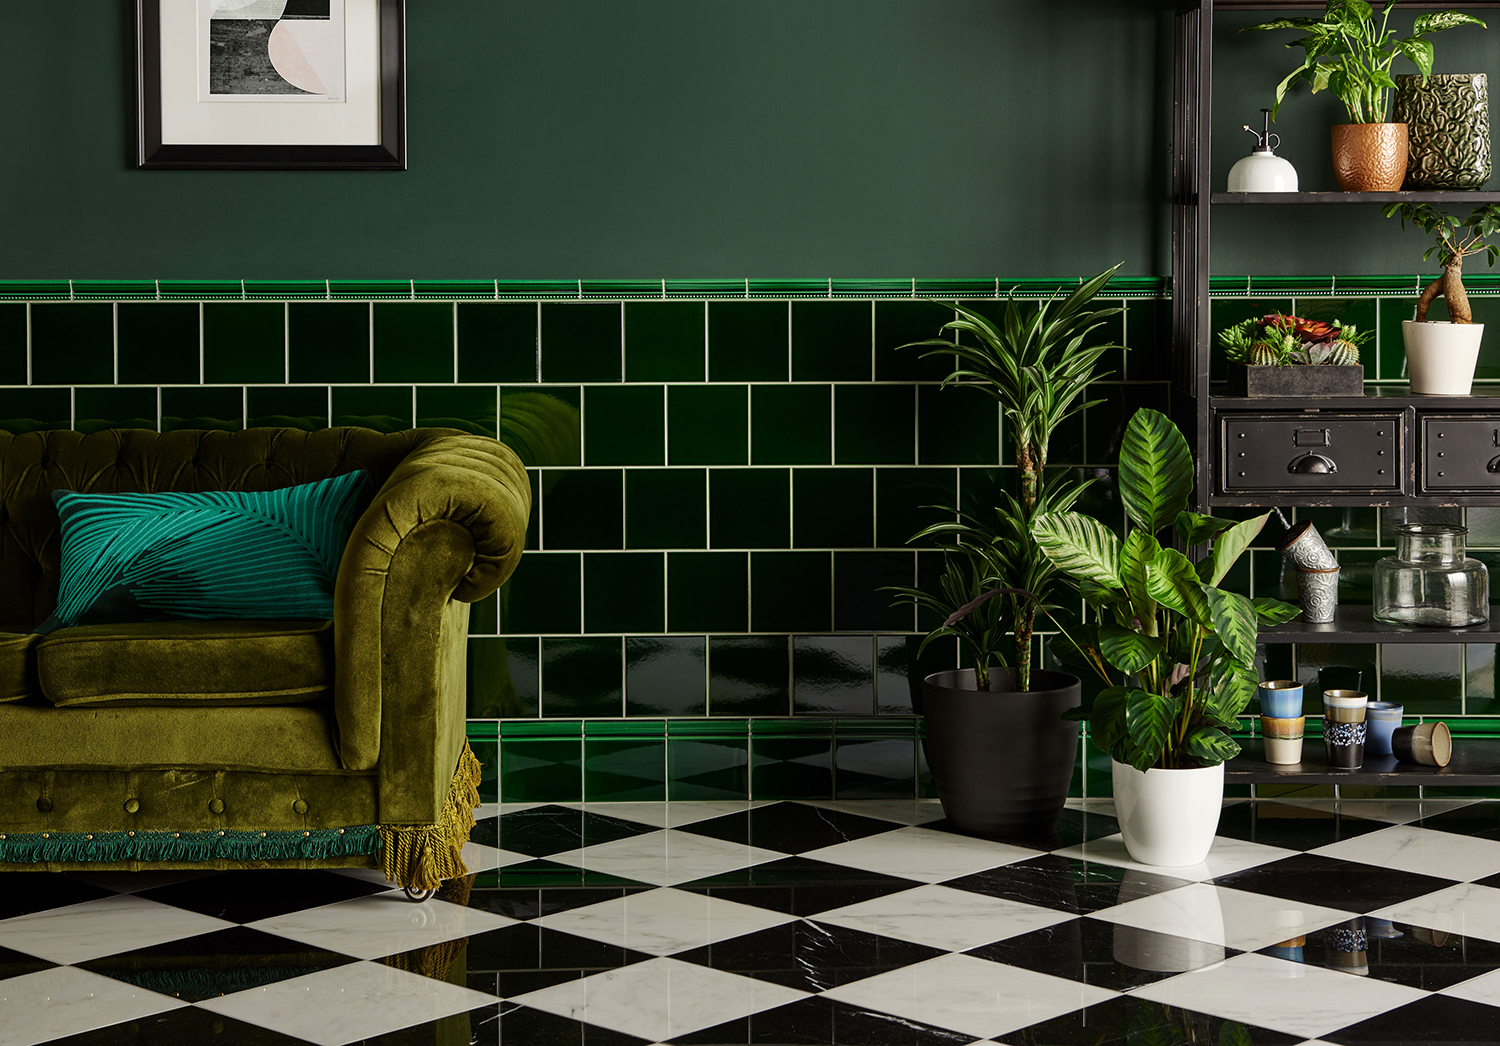 Artworks Victorian Green Ceramic Tiles with Earthworks Marble Floor Tiles